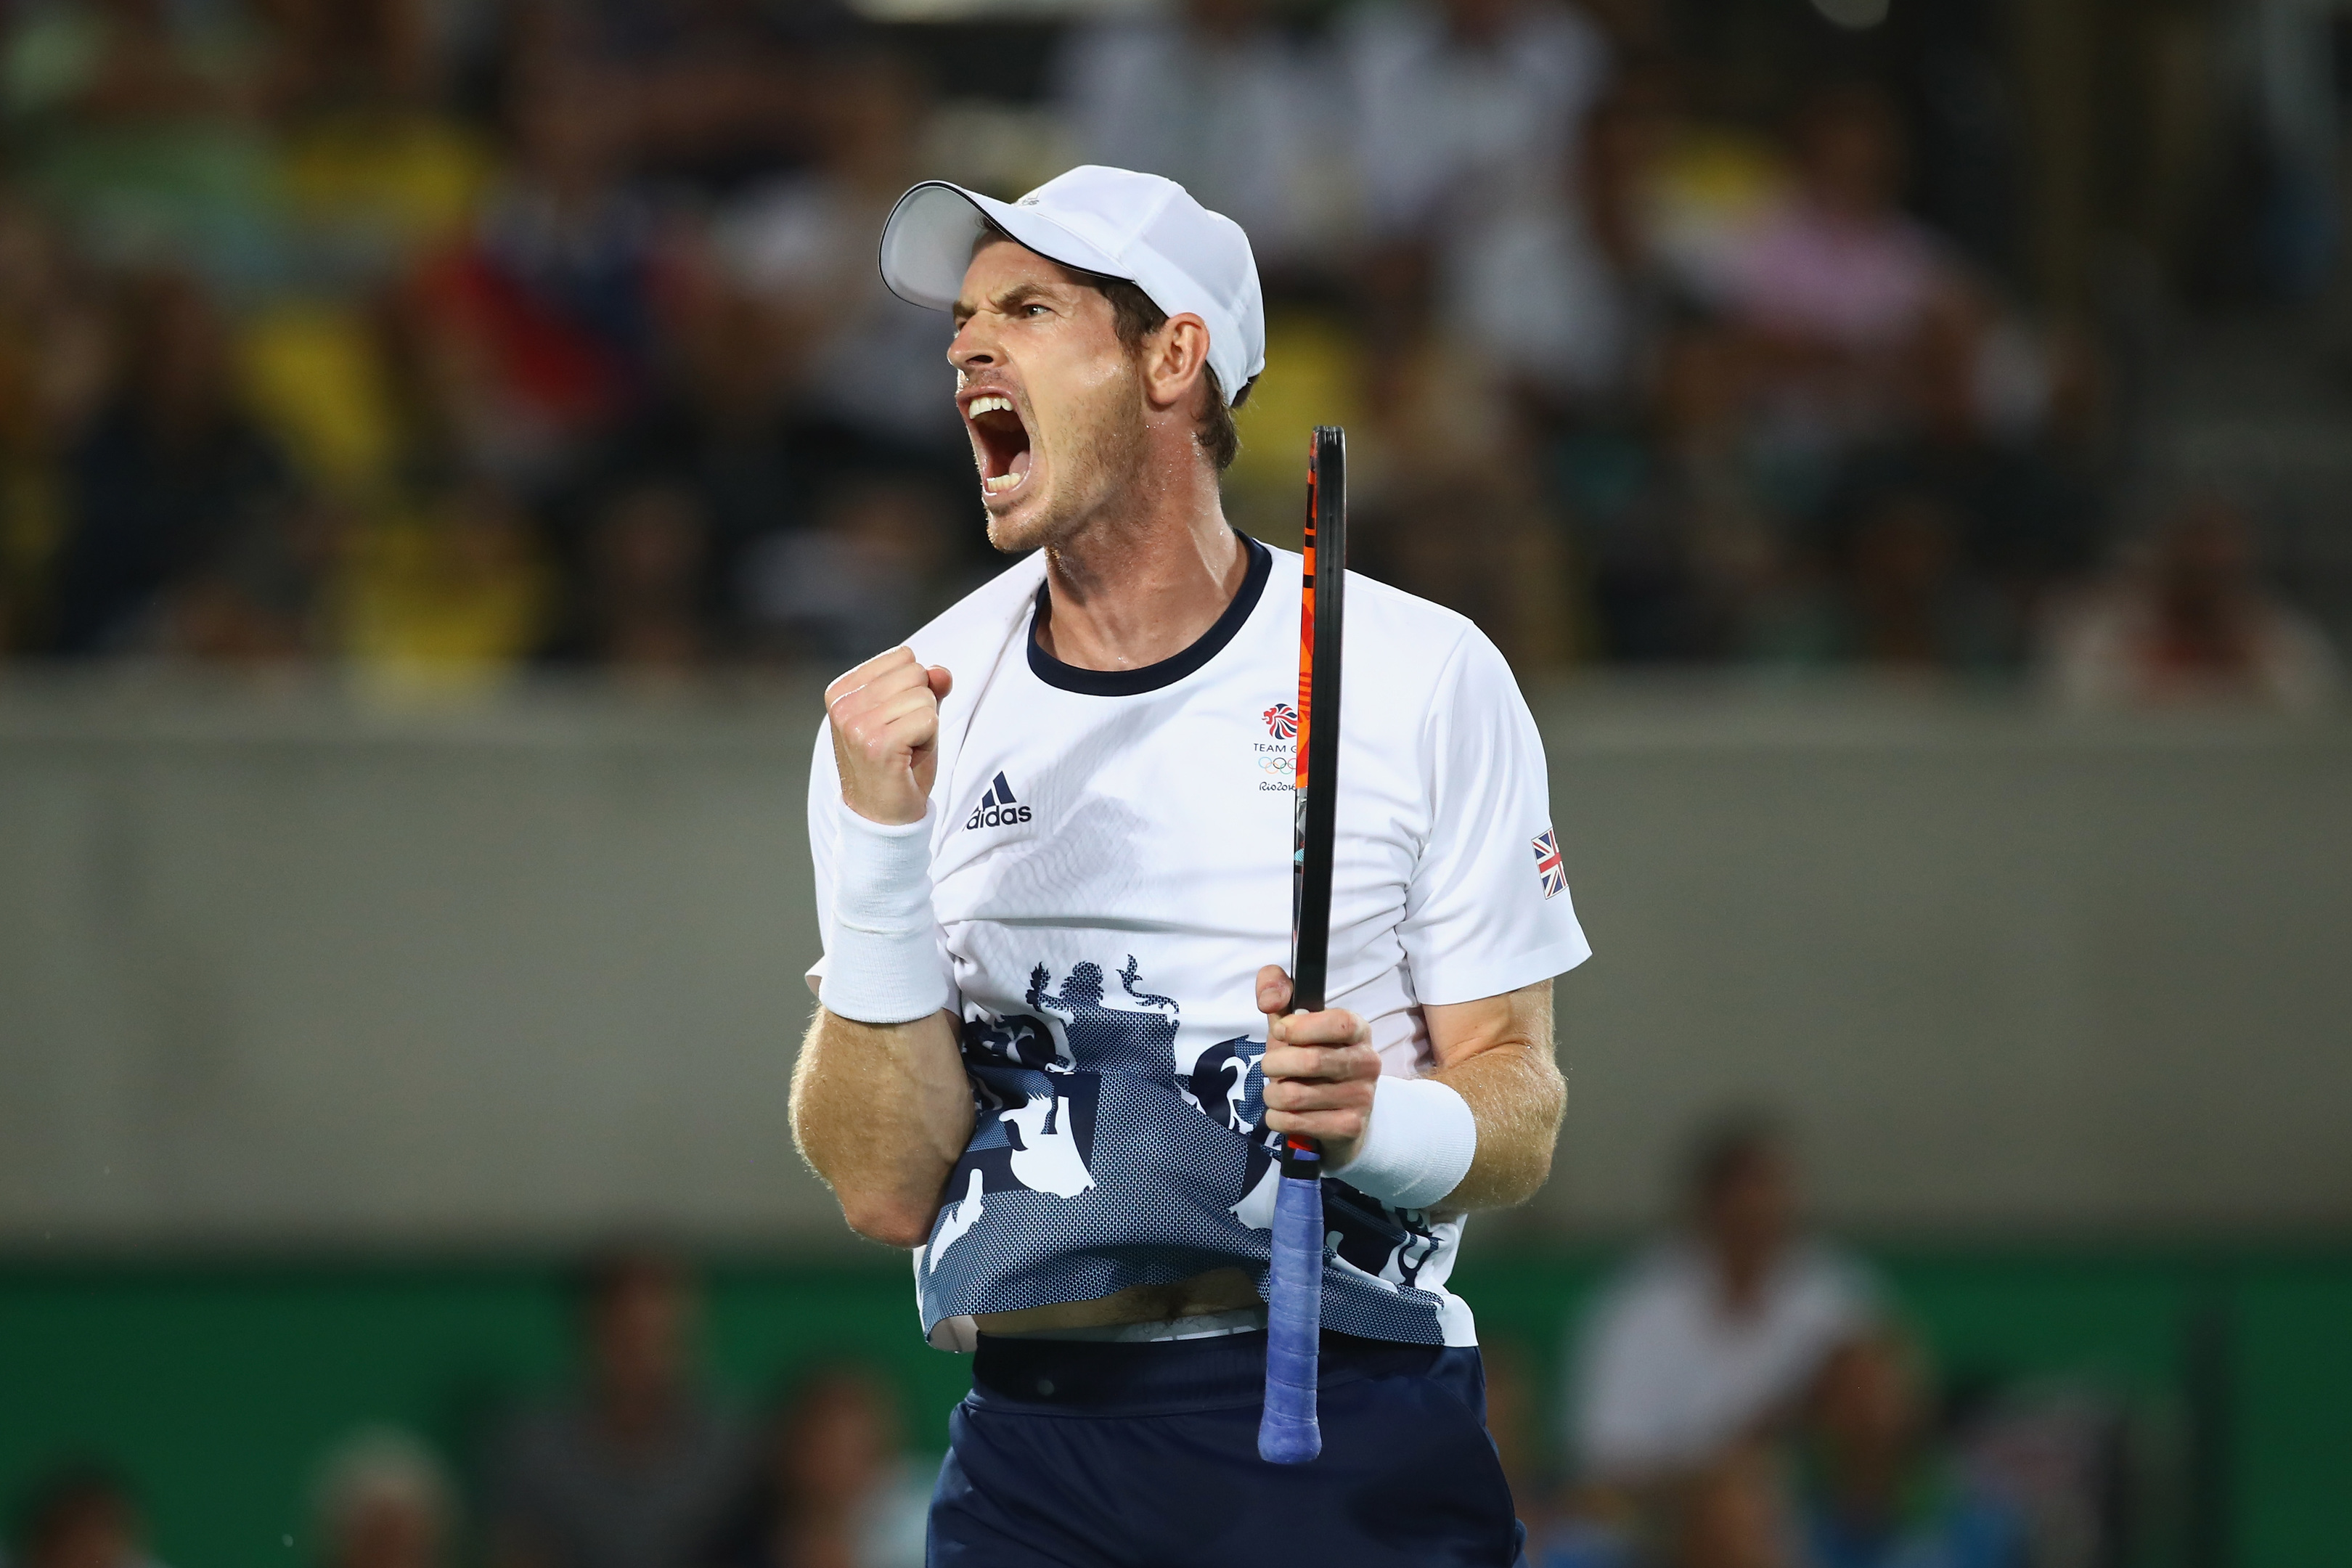 Andy Murray of Great Britain celebrates winning match point during the men's singles gold medal match against Juan Martin Del Potro of Argentina (Clive Brunskill/Getty Images)